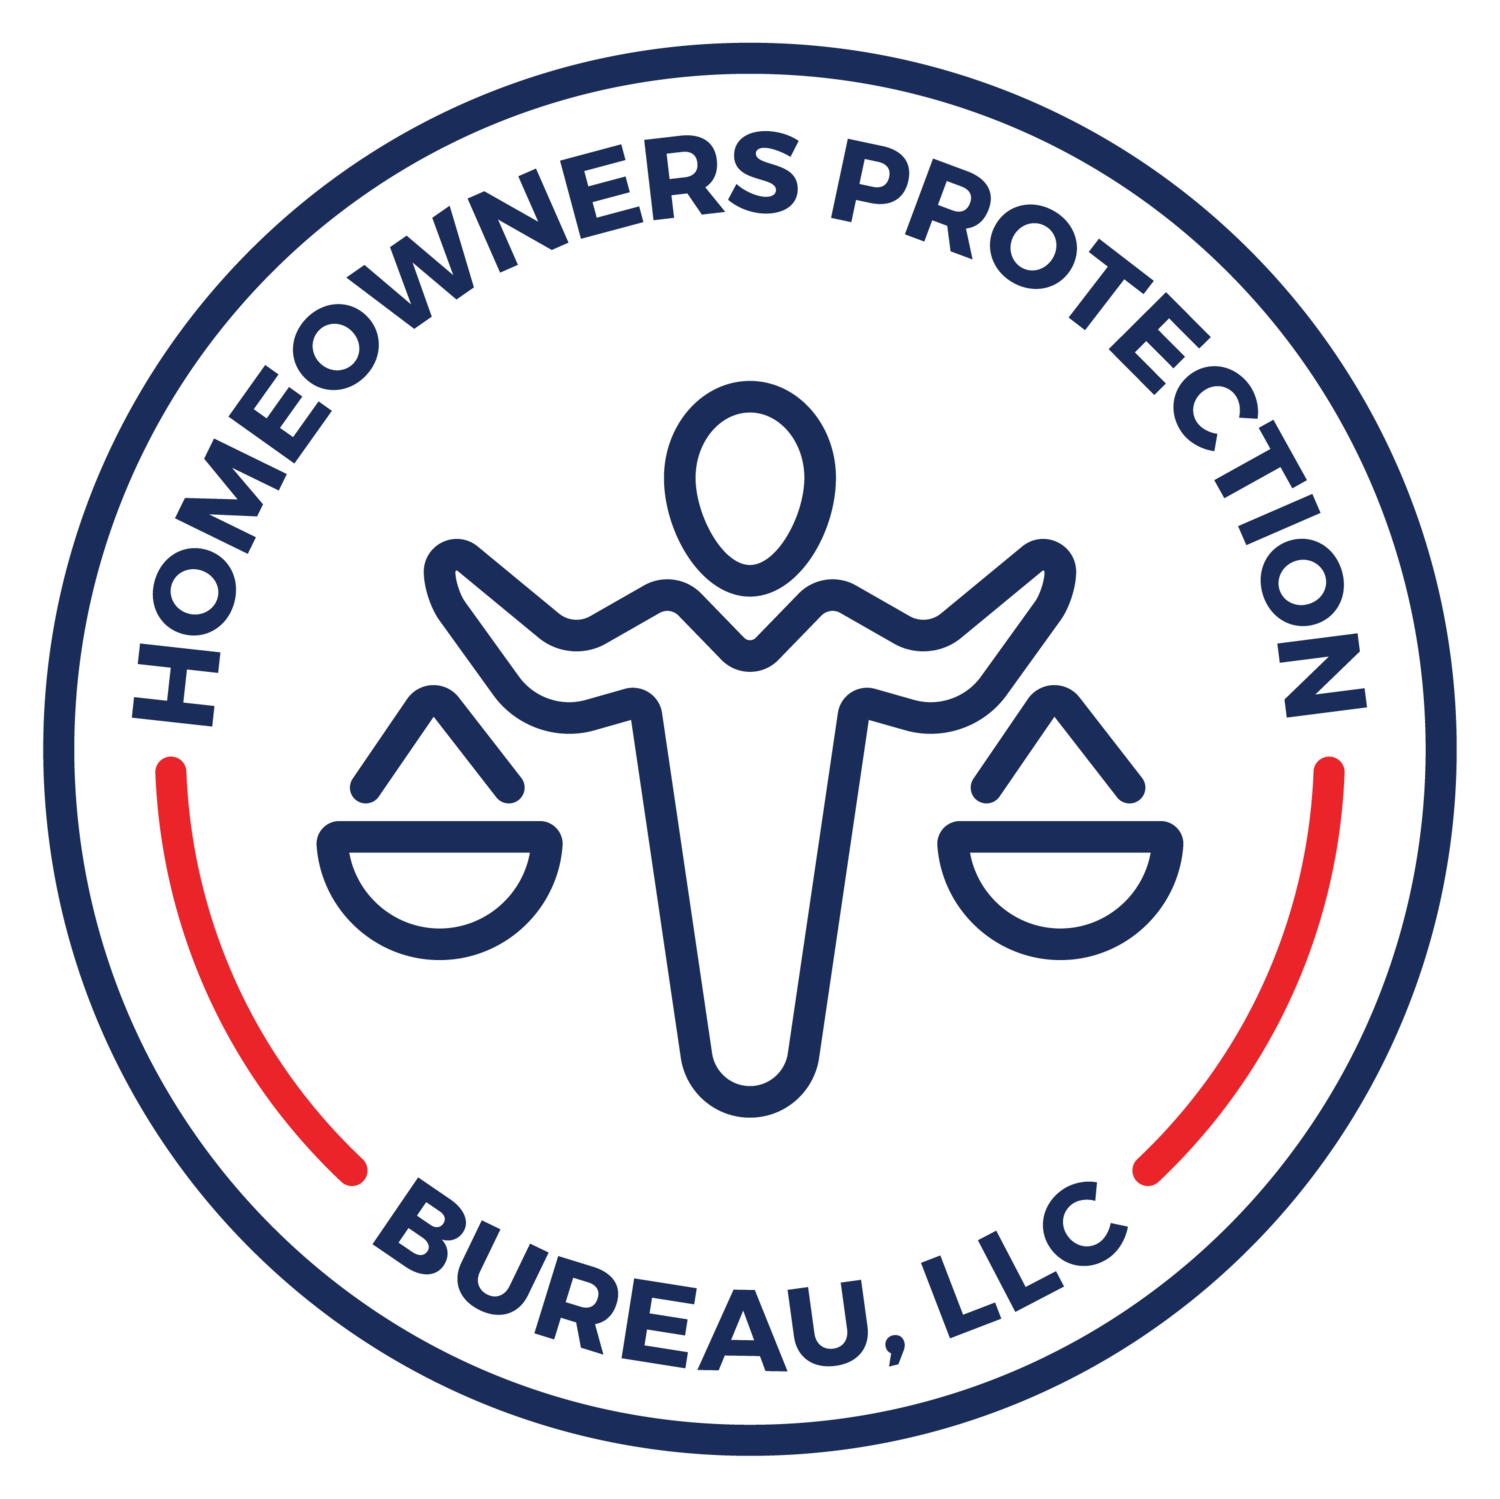 Homeowners Protection Bureau, LLC